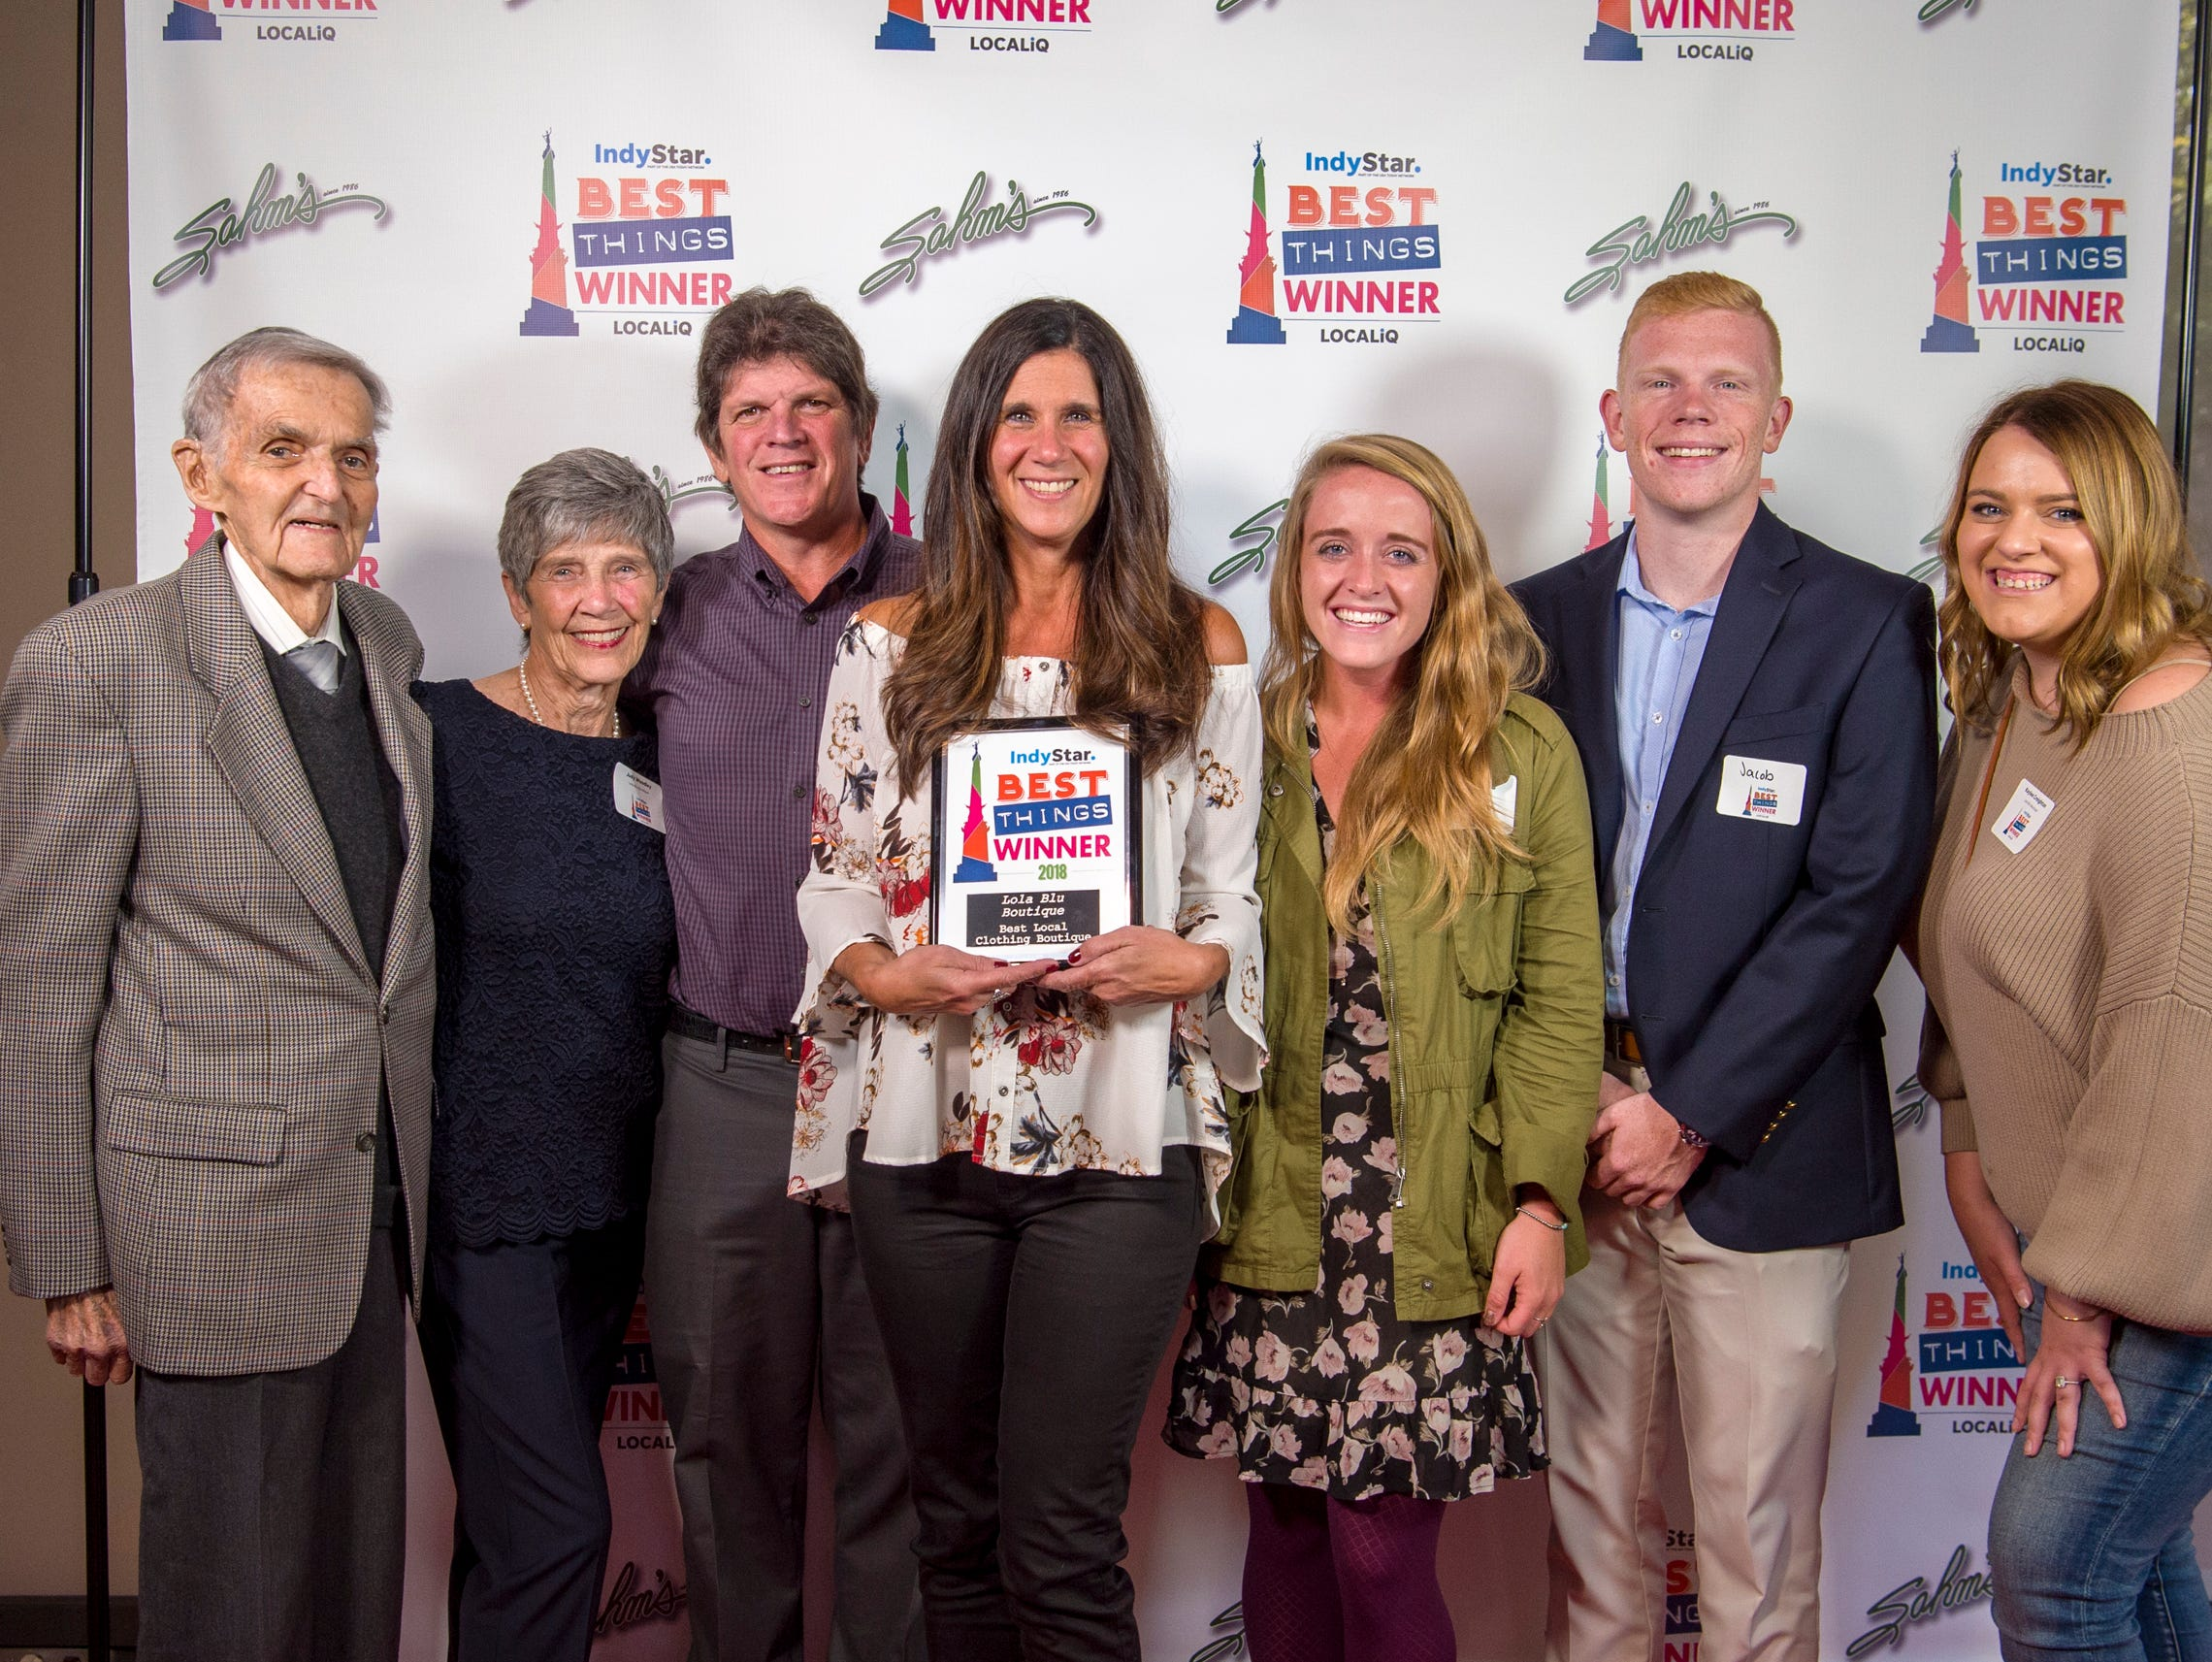 Best Things Indy 2018 award winners and their friends and family pose for a photo during the award ceremony at One America Tower in Indianapolis, Thursday, Sept. 27, 2018.